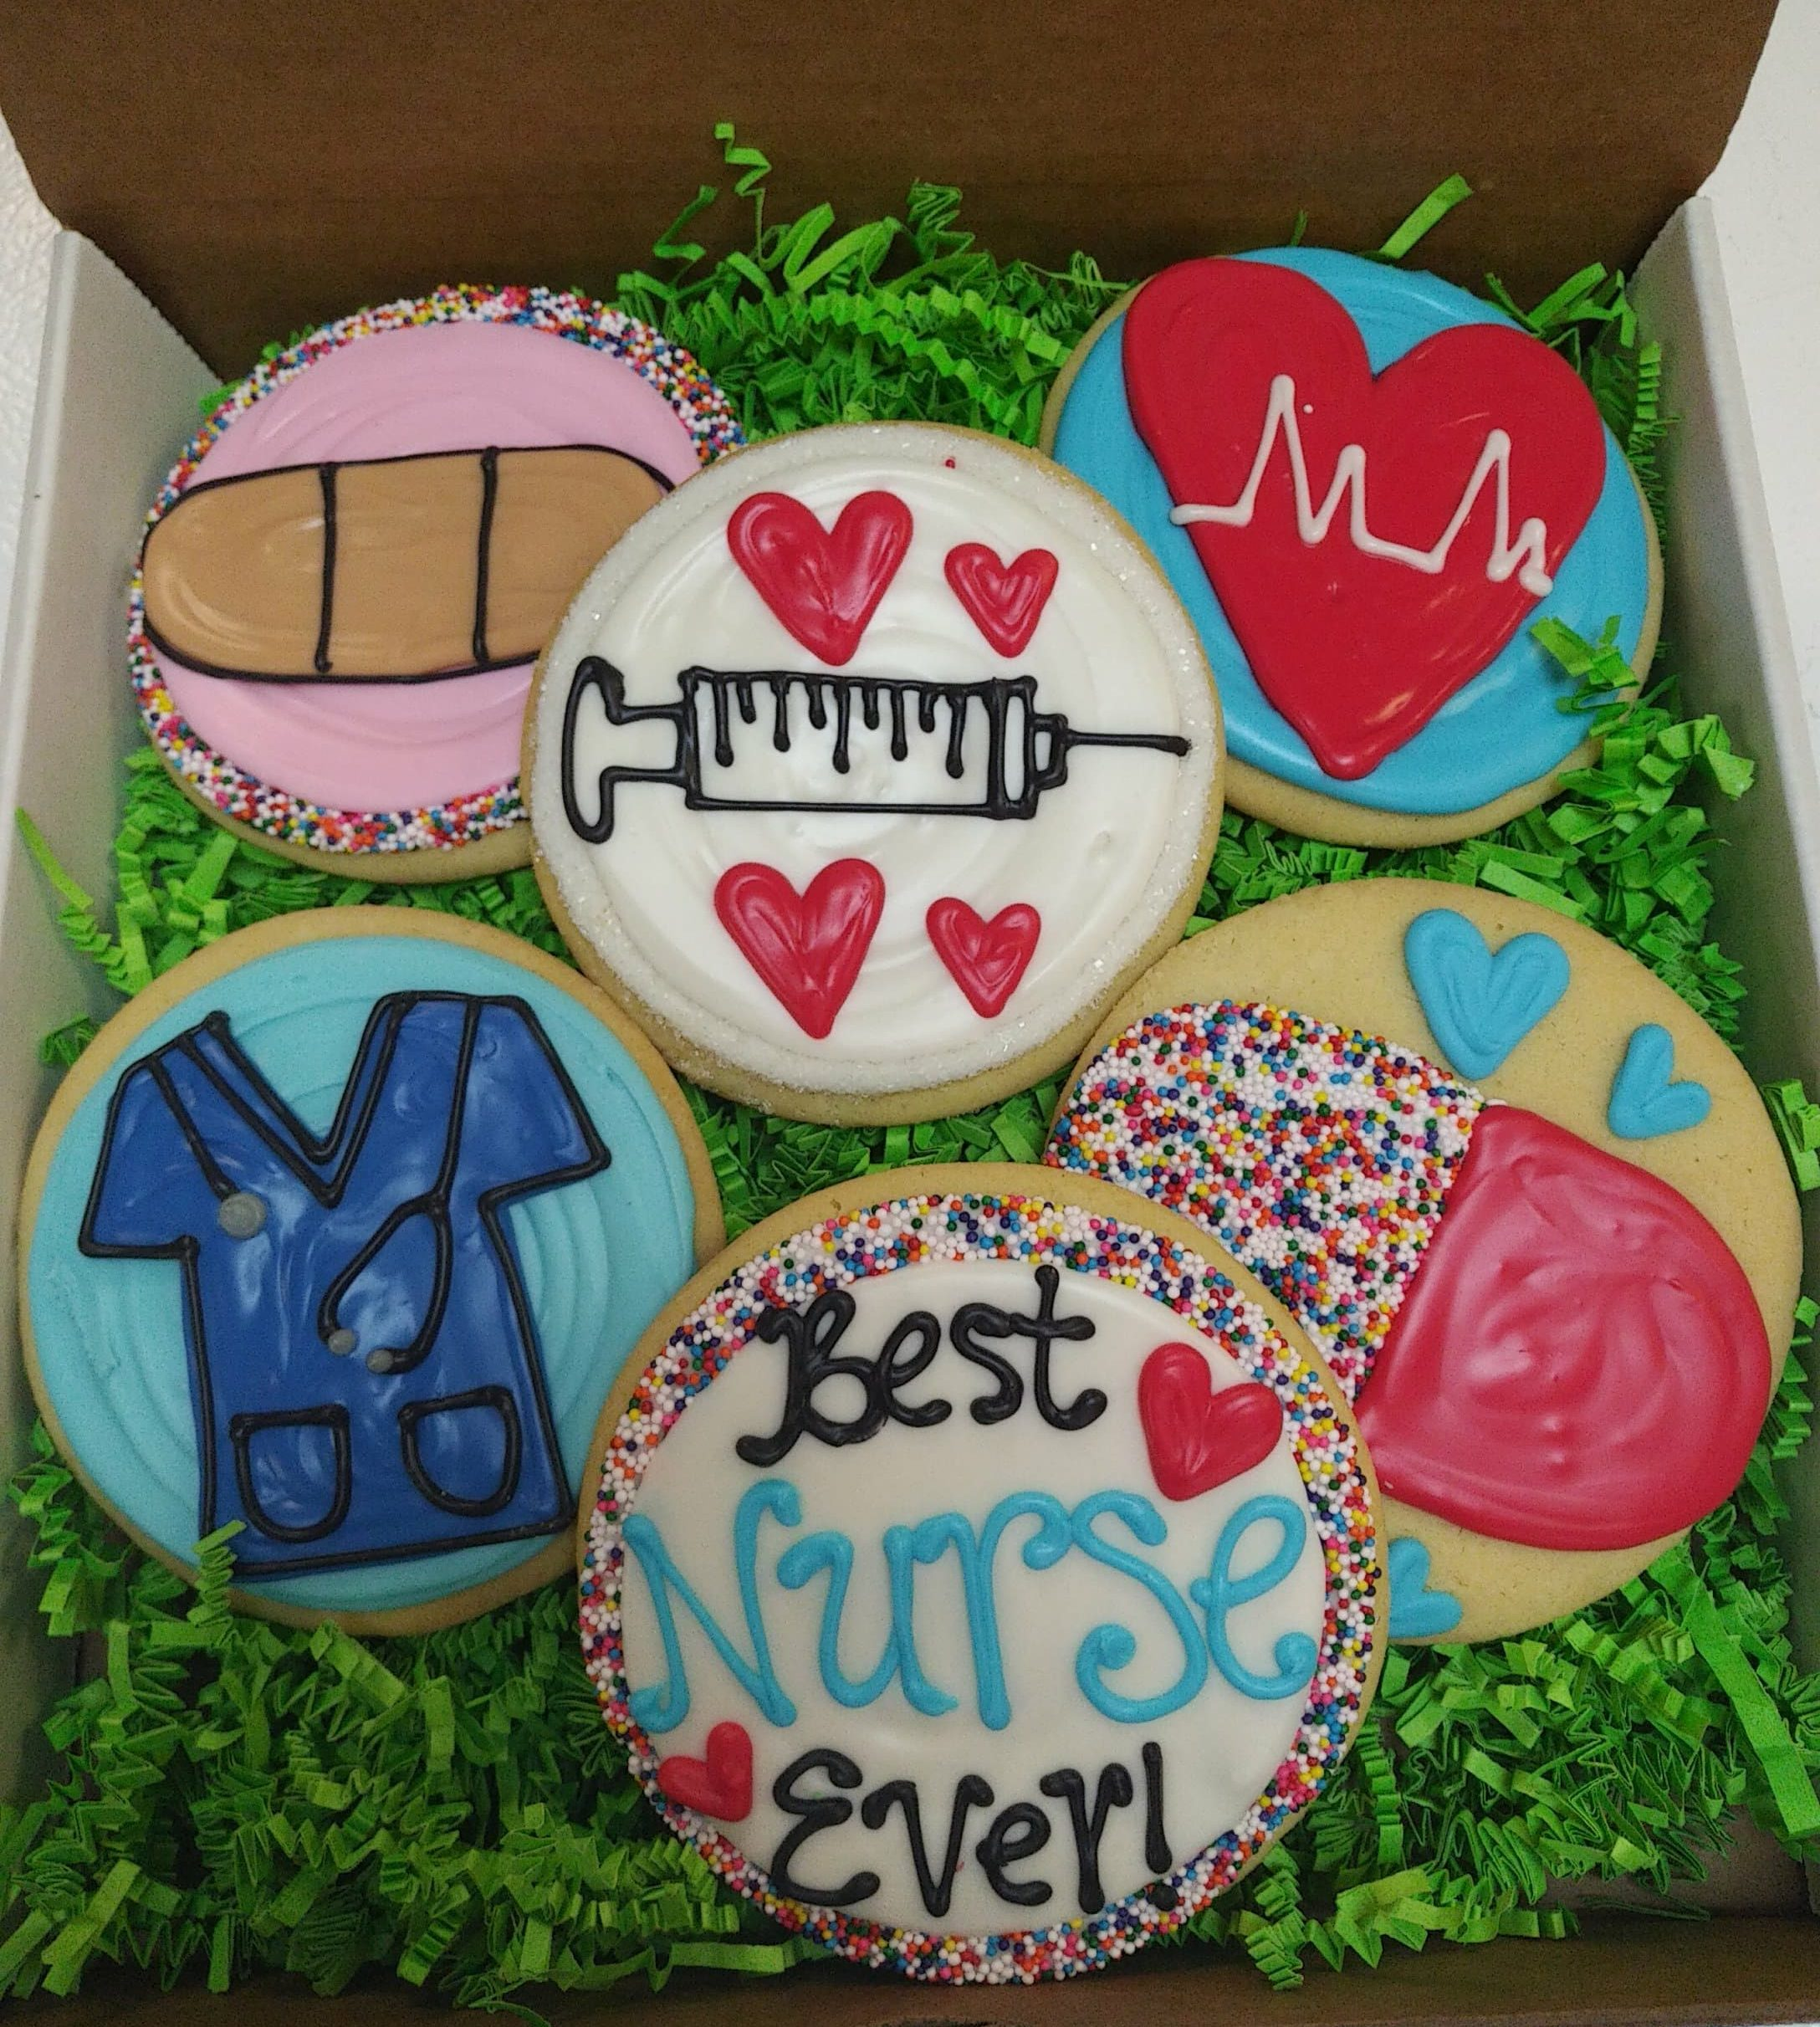 Half Dozen Nurse Decorated Cookies